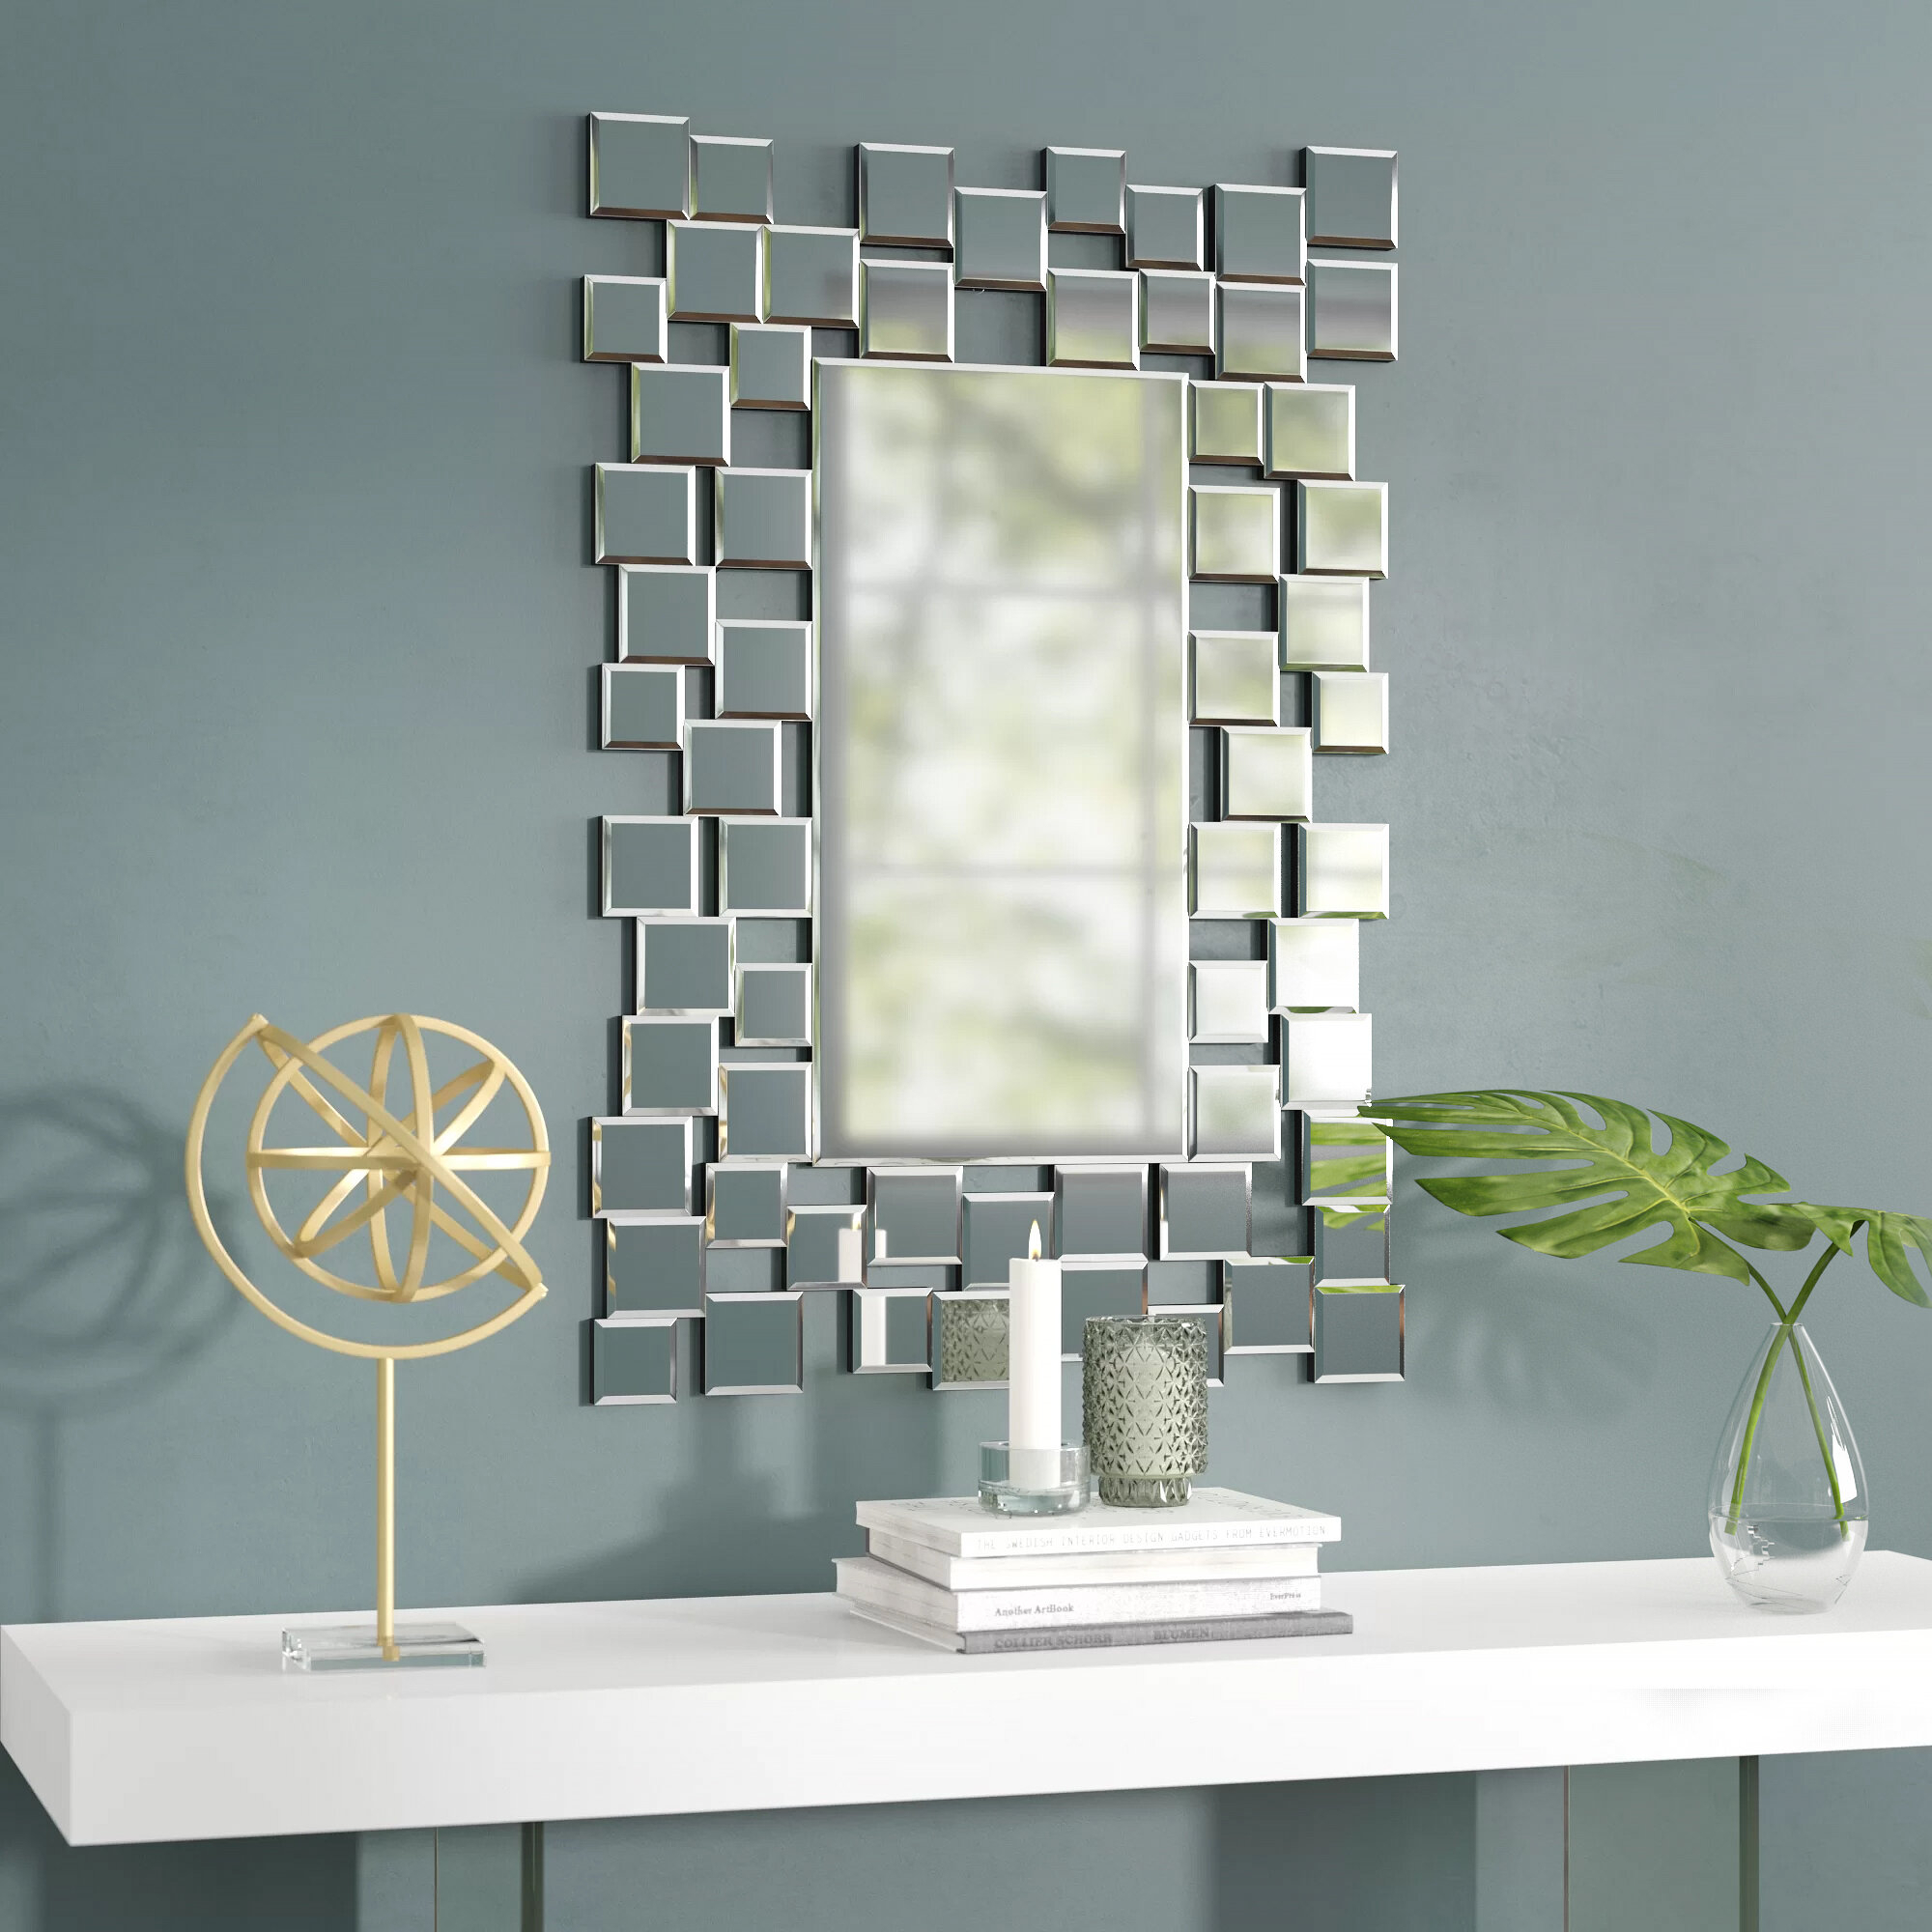 2019 Pennsburg Rectangle Wall Mirror By Wade Logan Pertaining To Brayden Studio Modern & Contemporary Accent Wall Mirror (View 1 of 20)